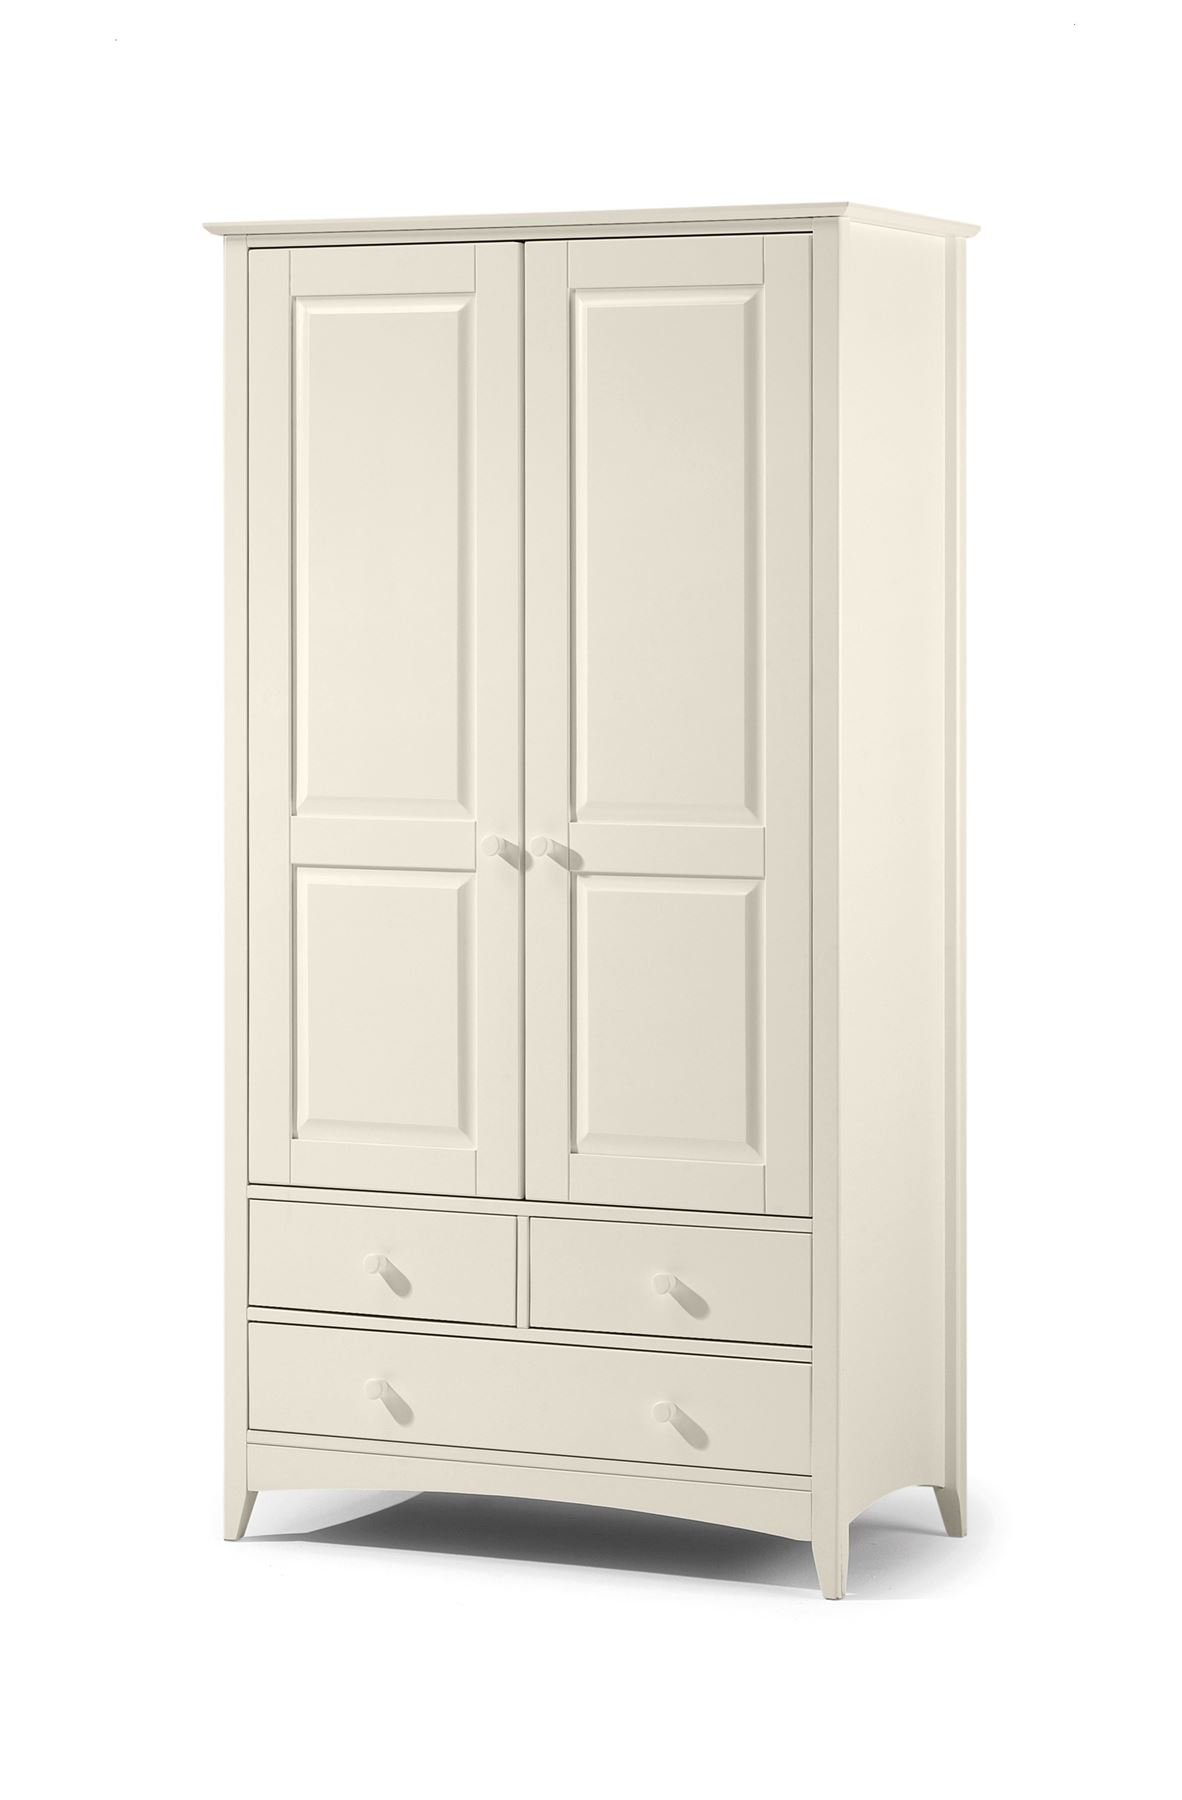 Julian Bowen Cameo Stone White Wood 2 Door 3 Drawers Combi Robe Wardrobe